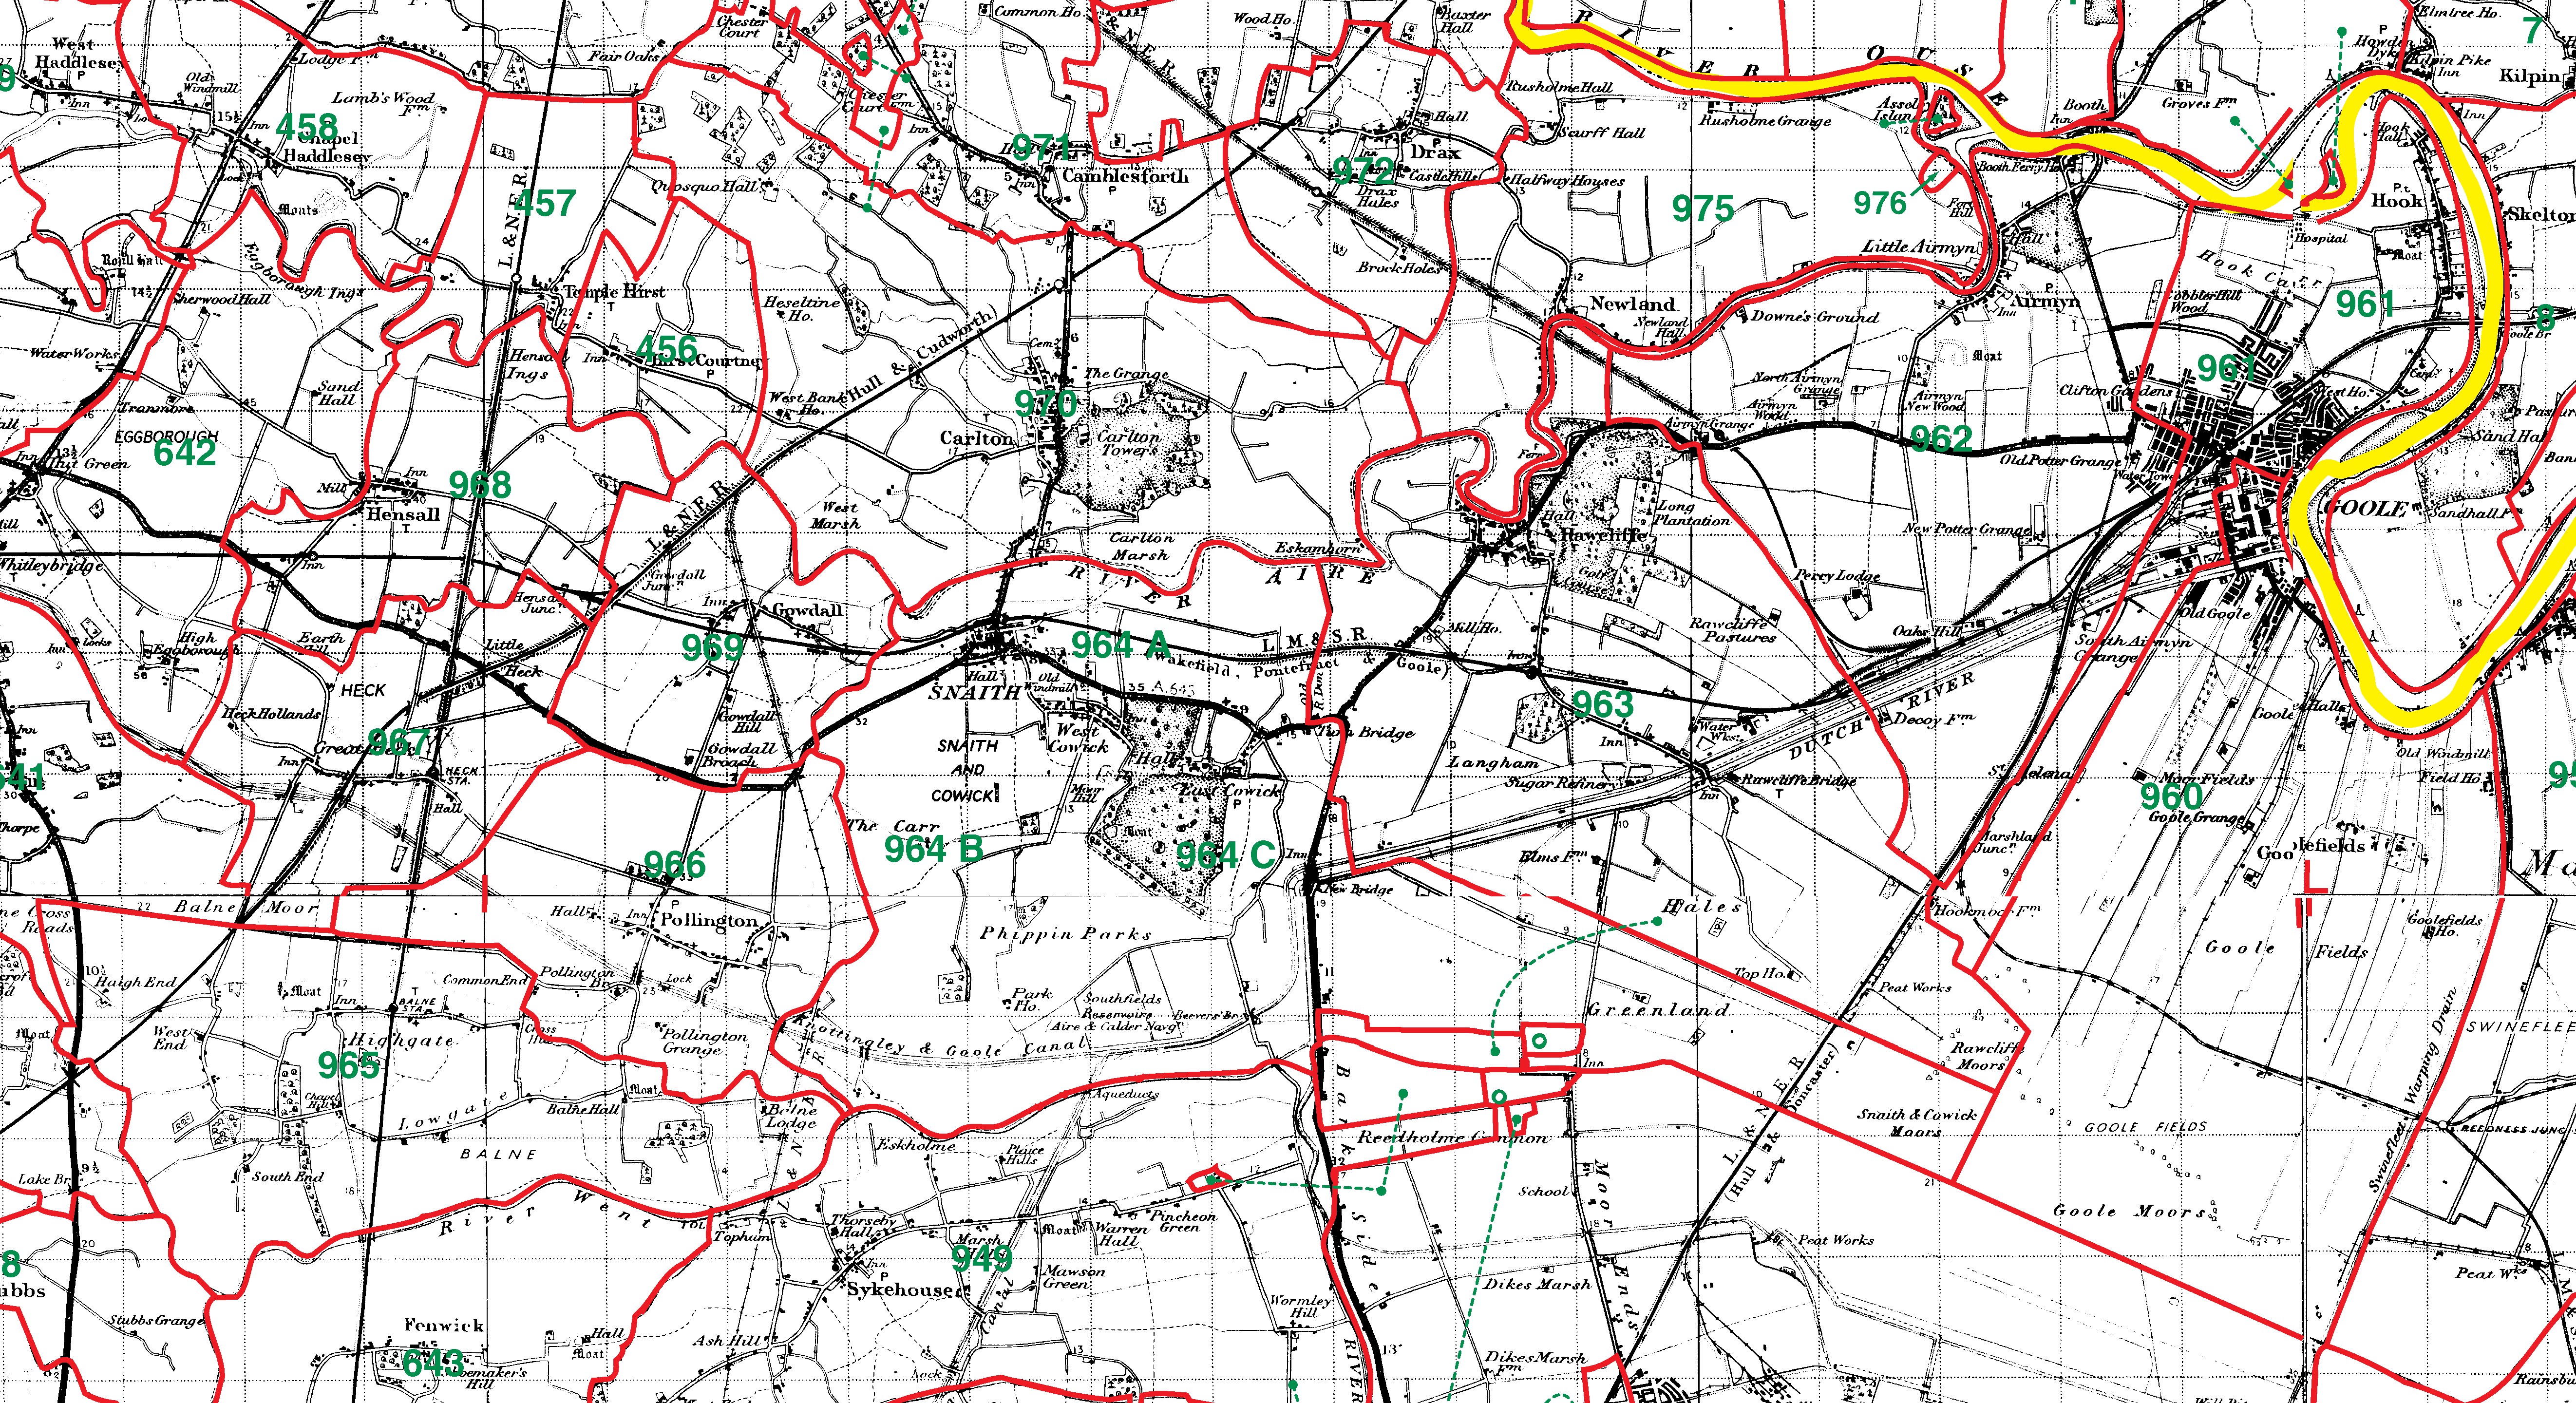 Snaith boundaries map